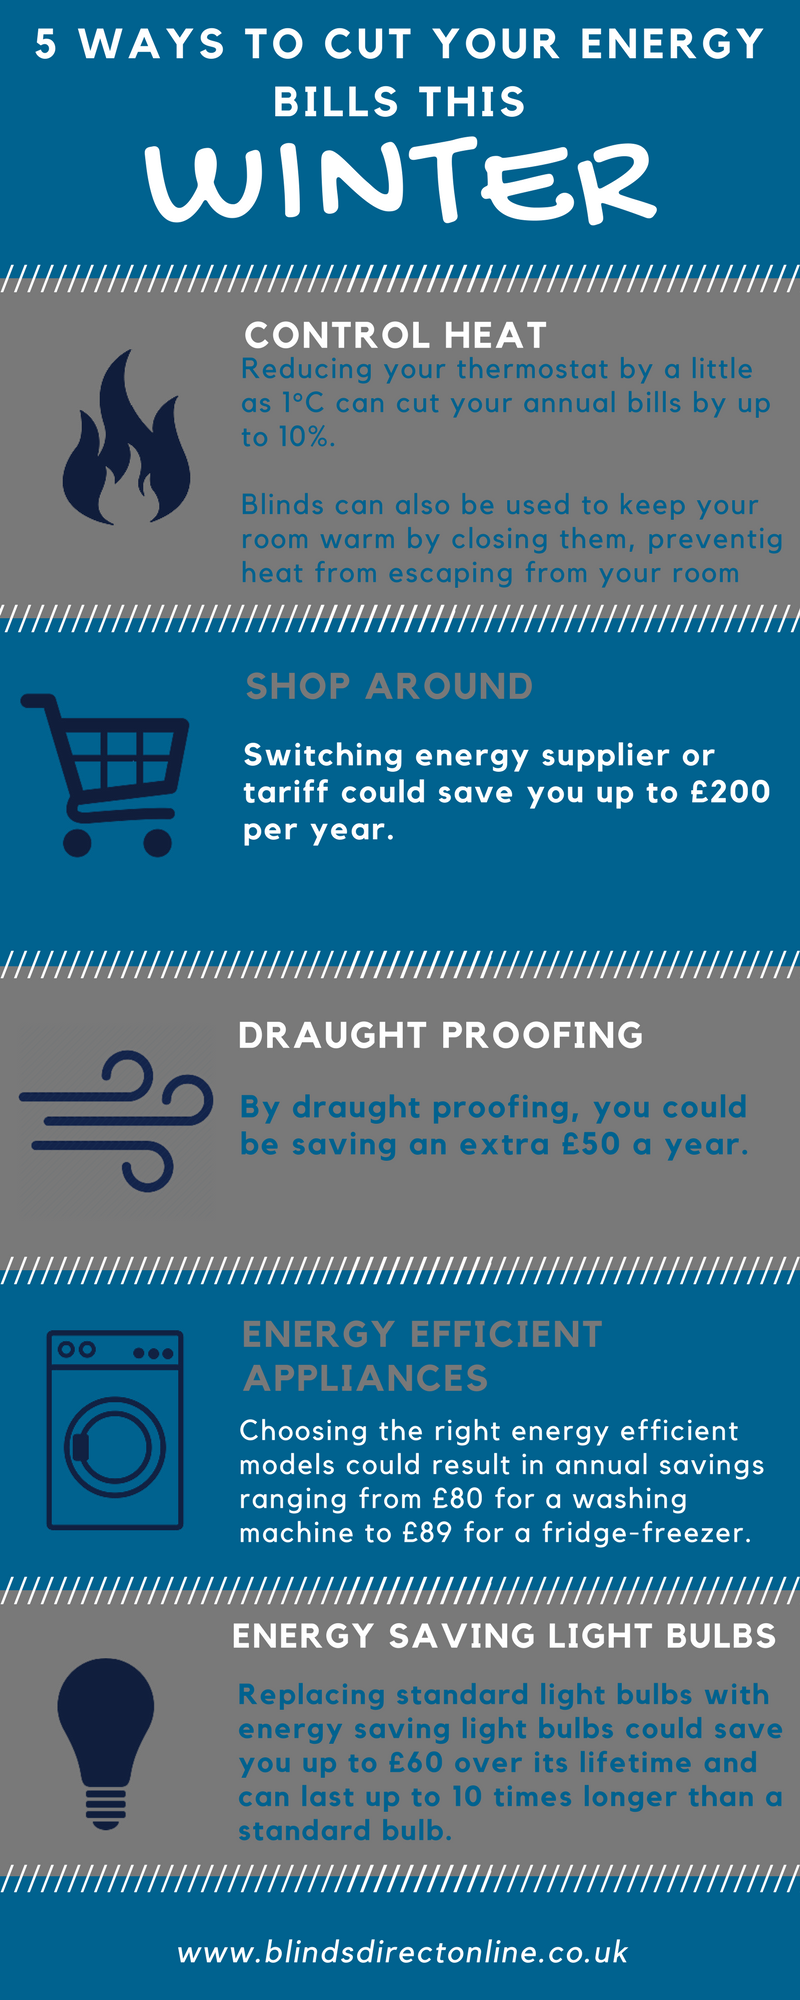 5 Ways to Cut Your Energy Bills This Winter